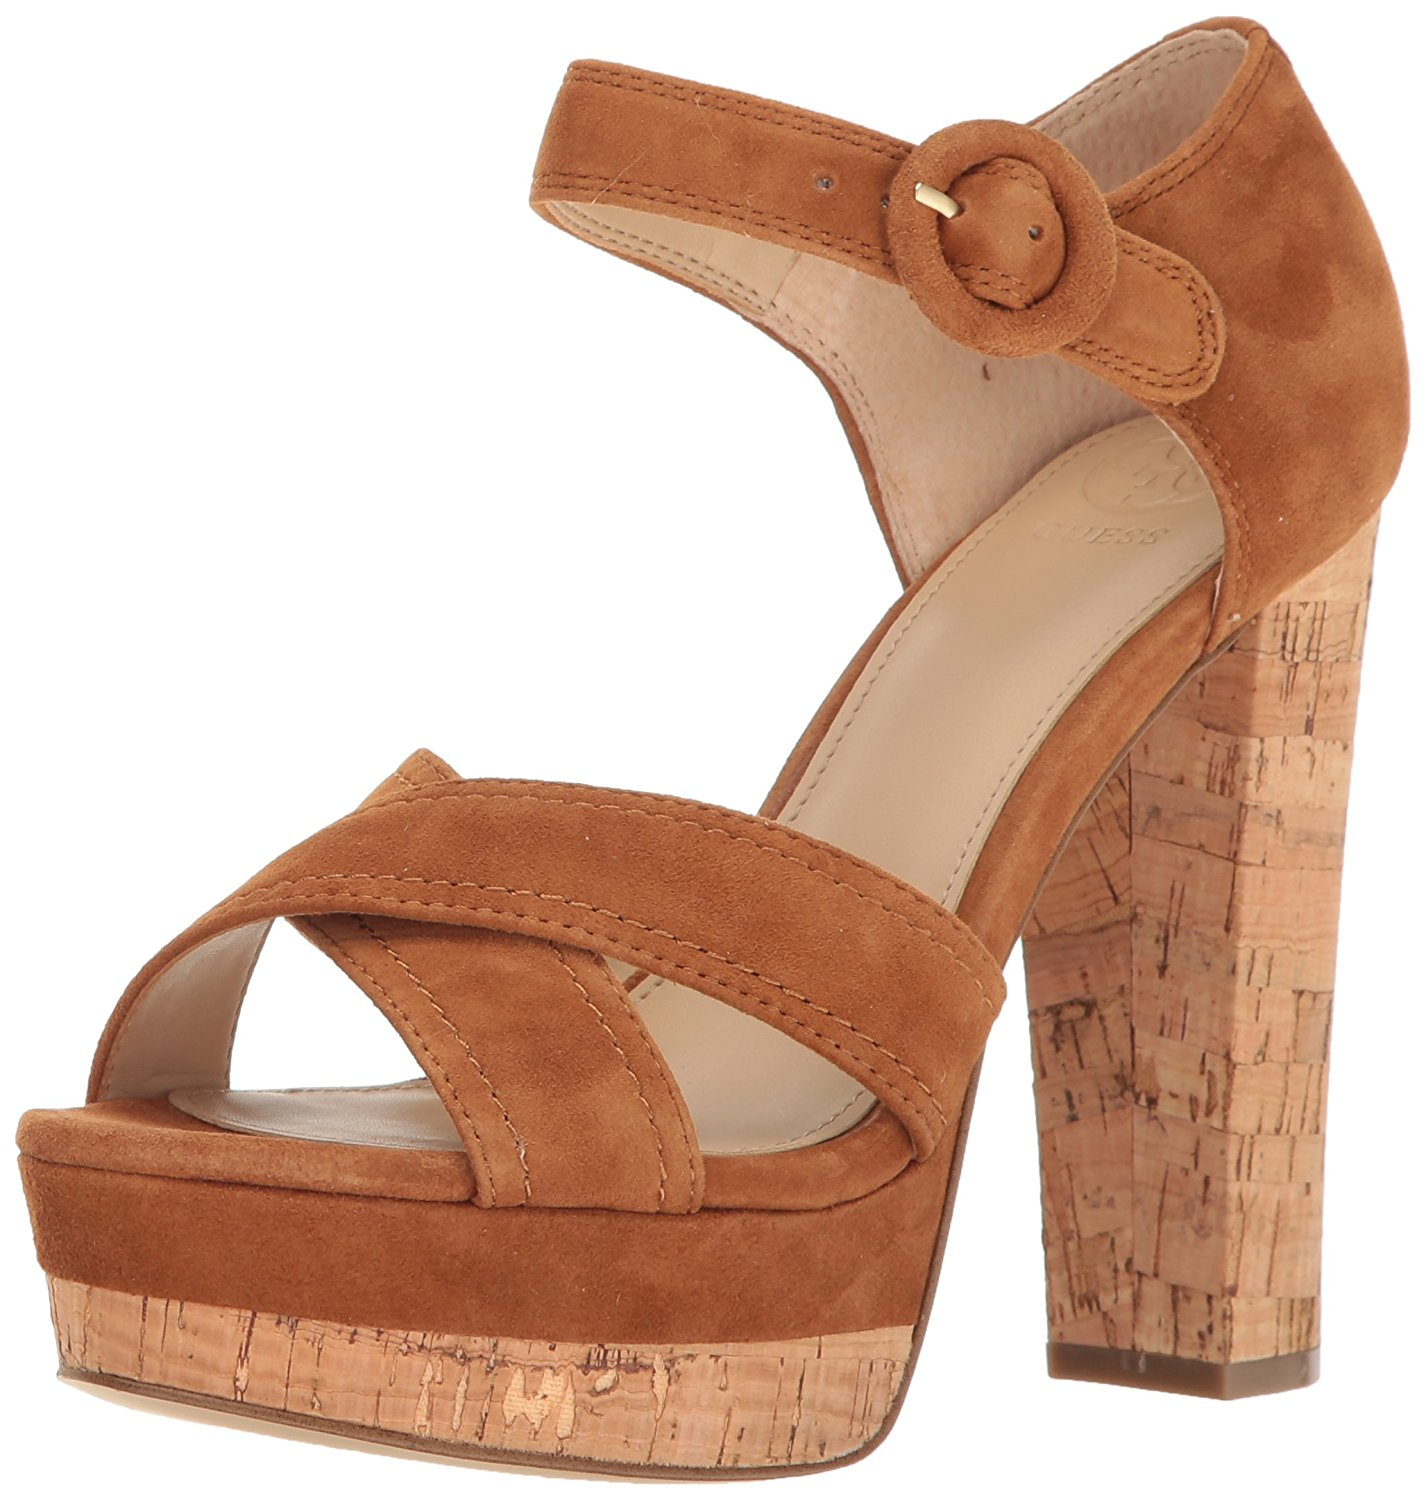 GUESS Womens Parris Suede Open Toe Casual Ankle Strap Sandals Cognac Size 5.5